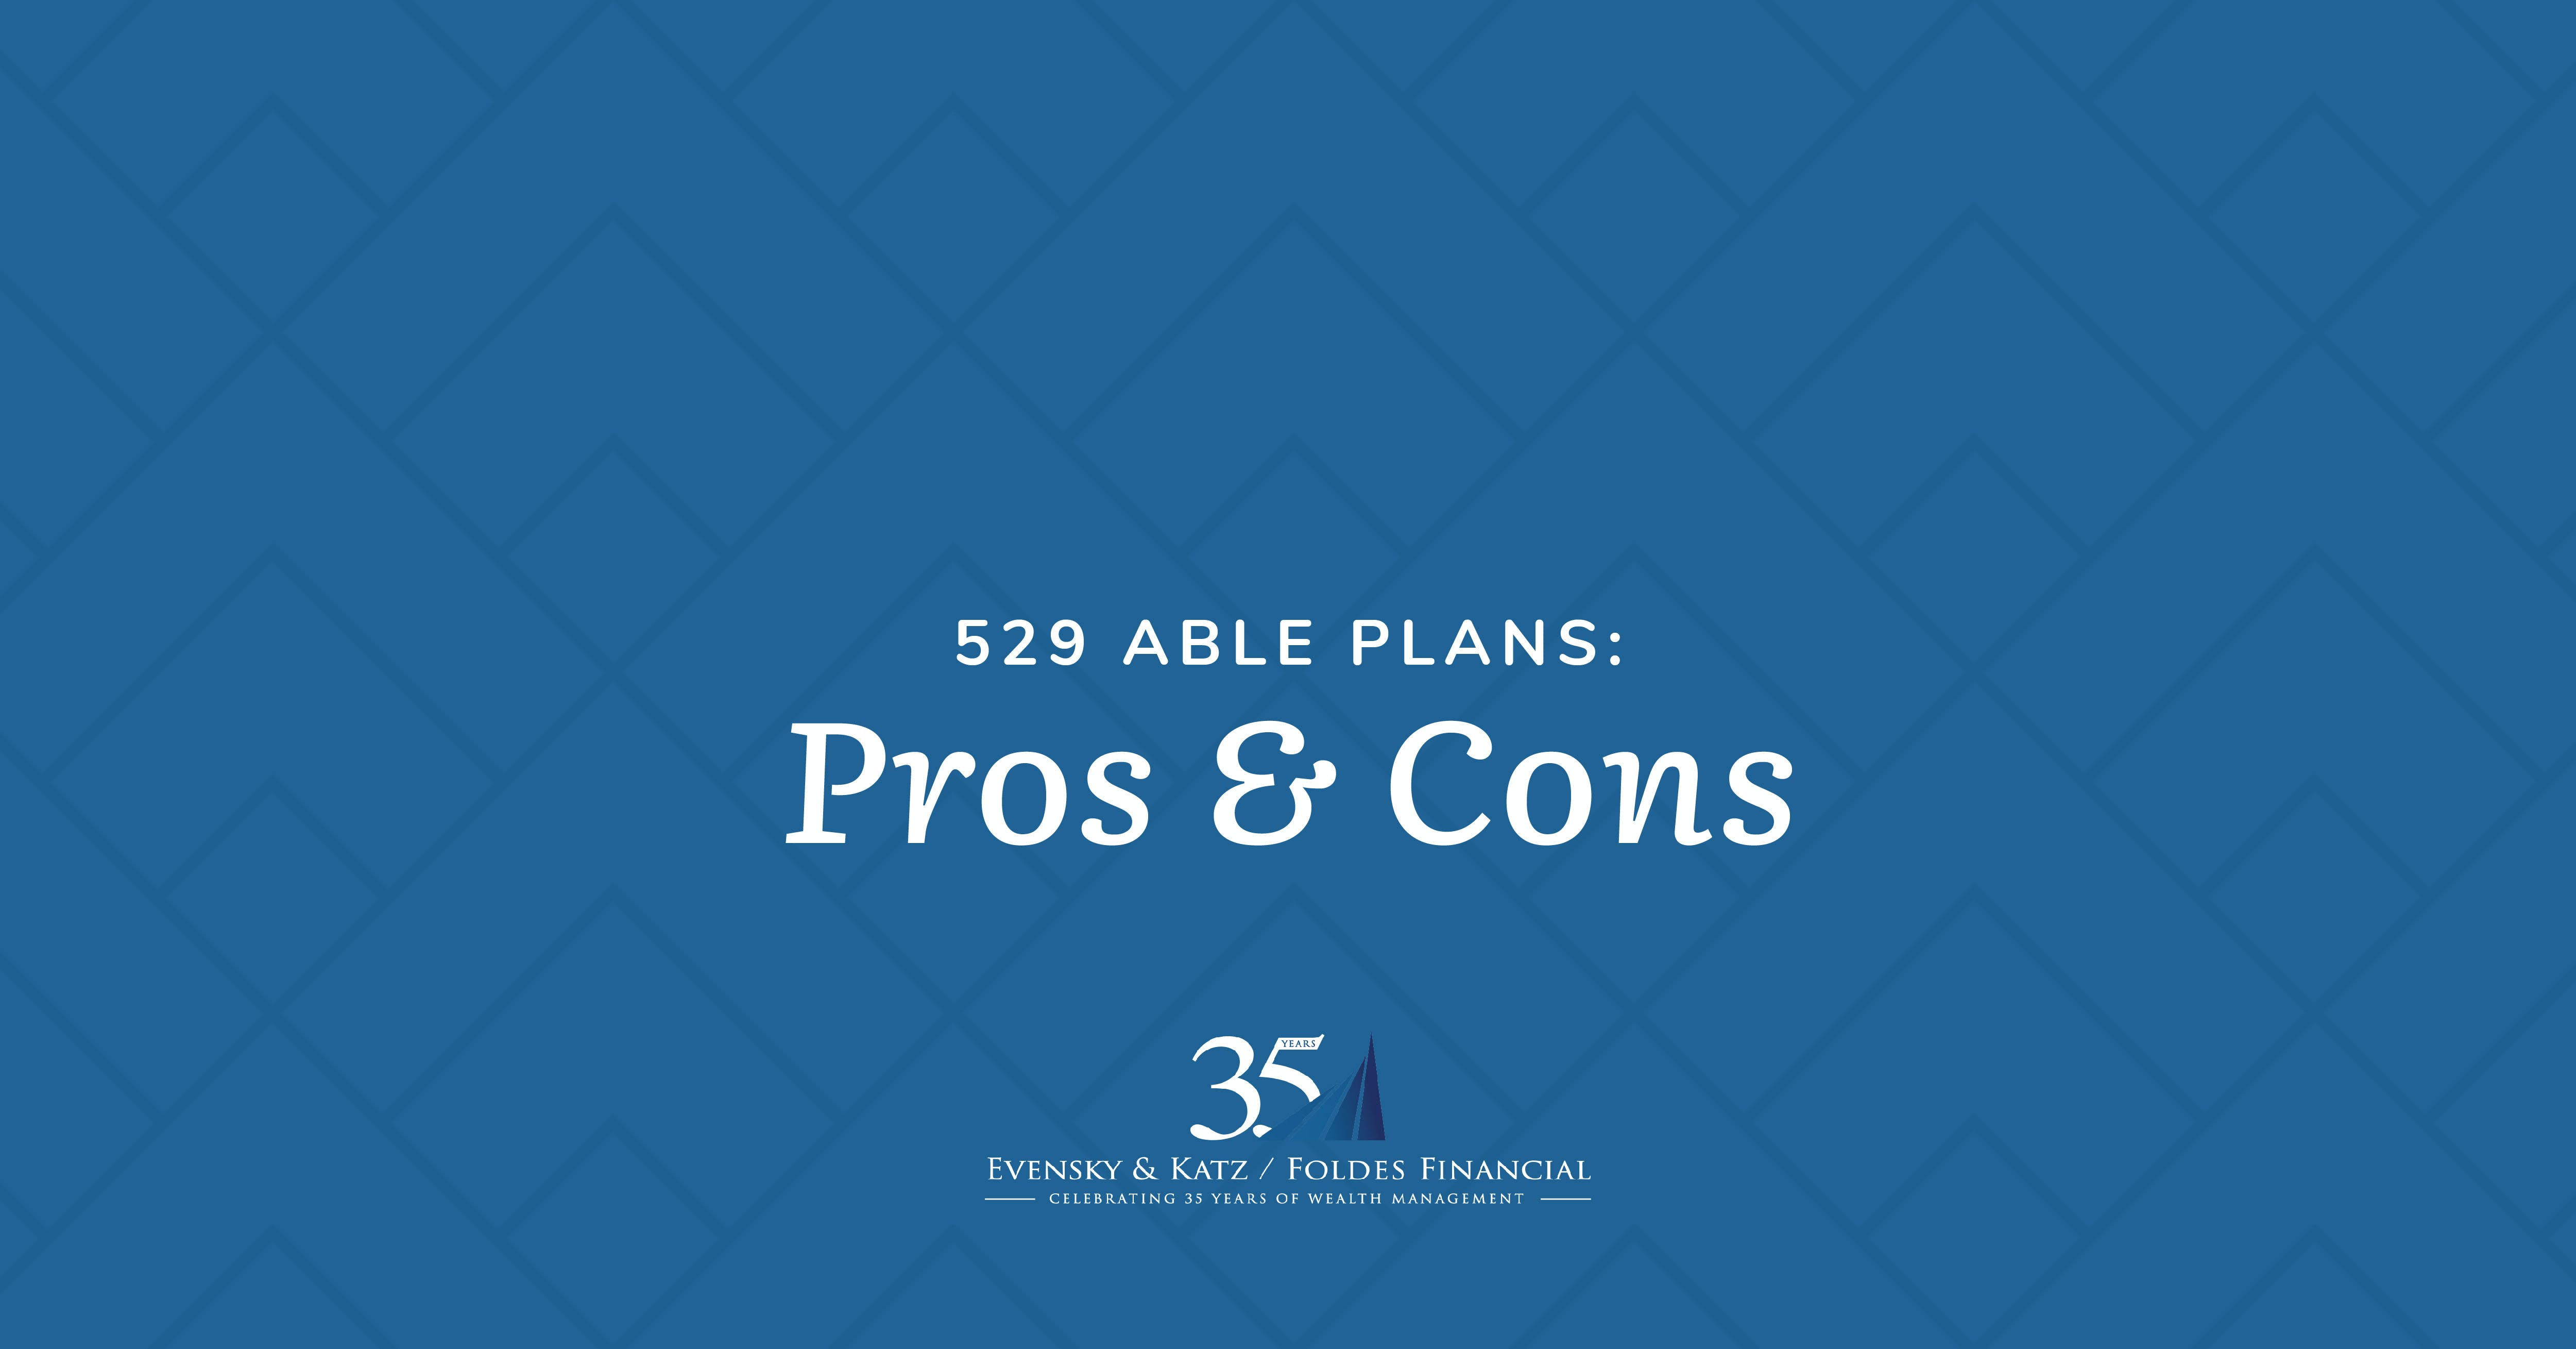 529 ABLE Plans: Pros & Cons event